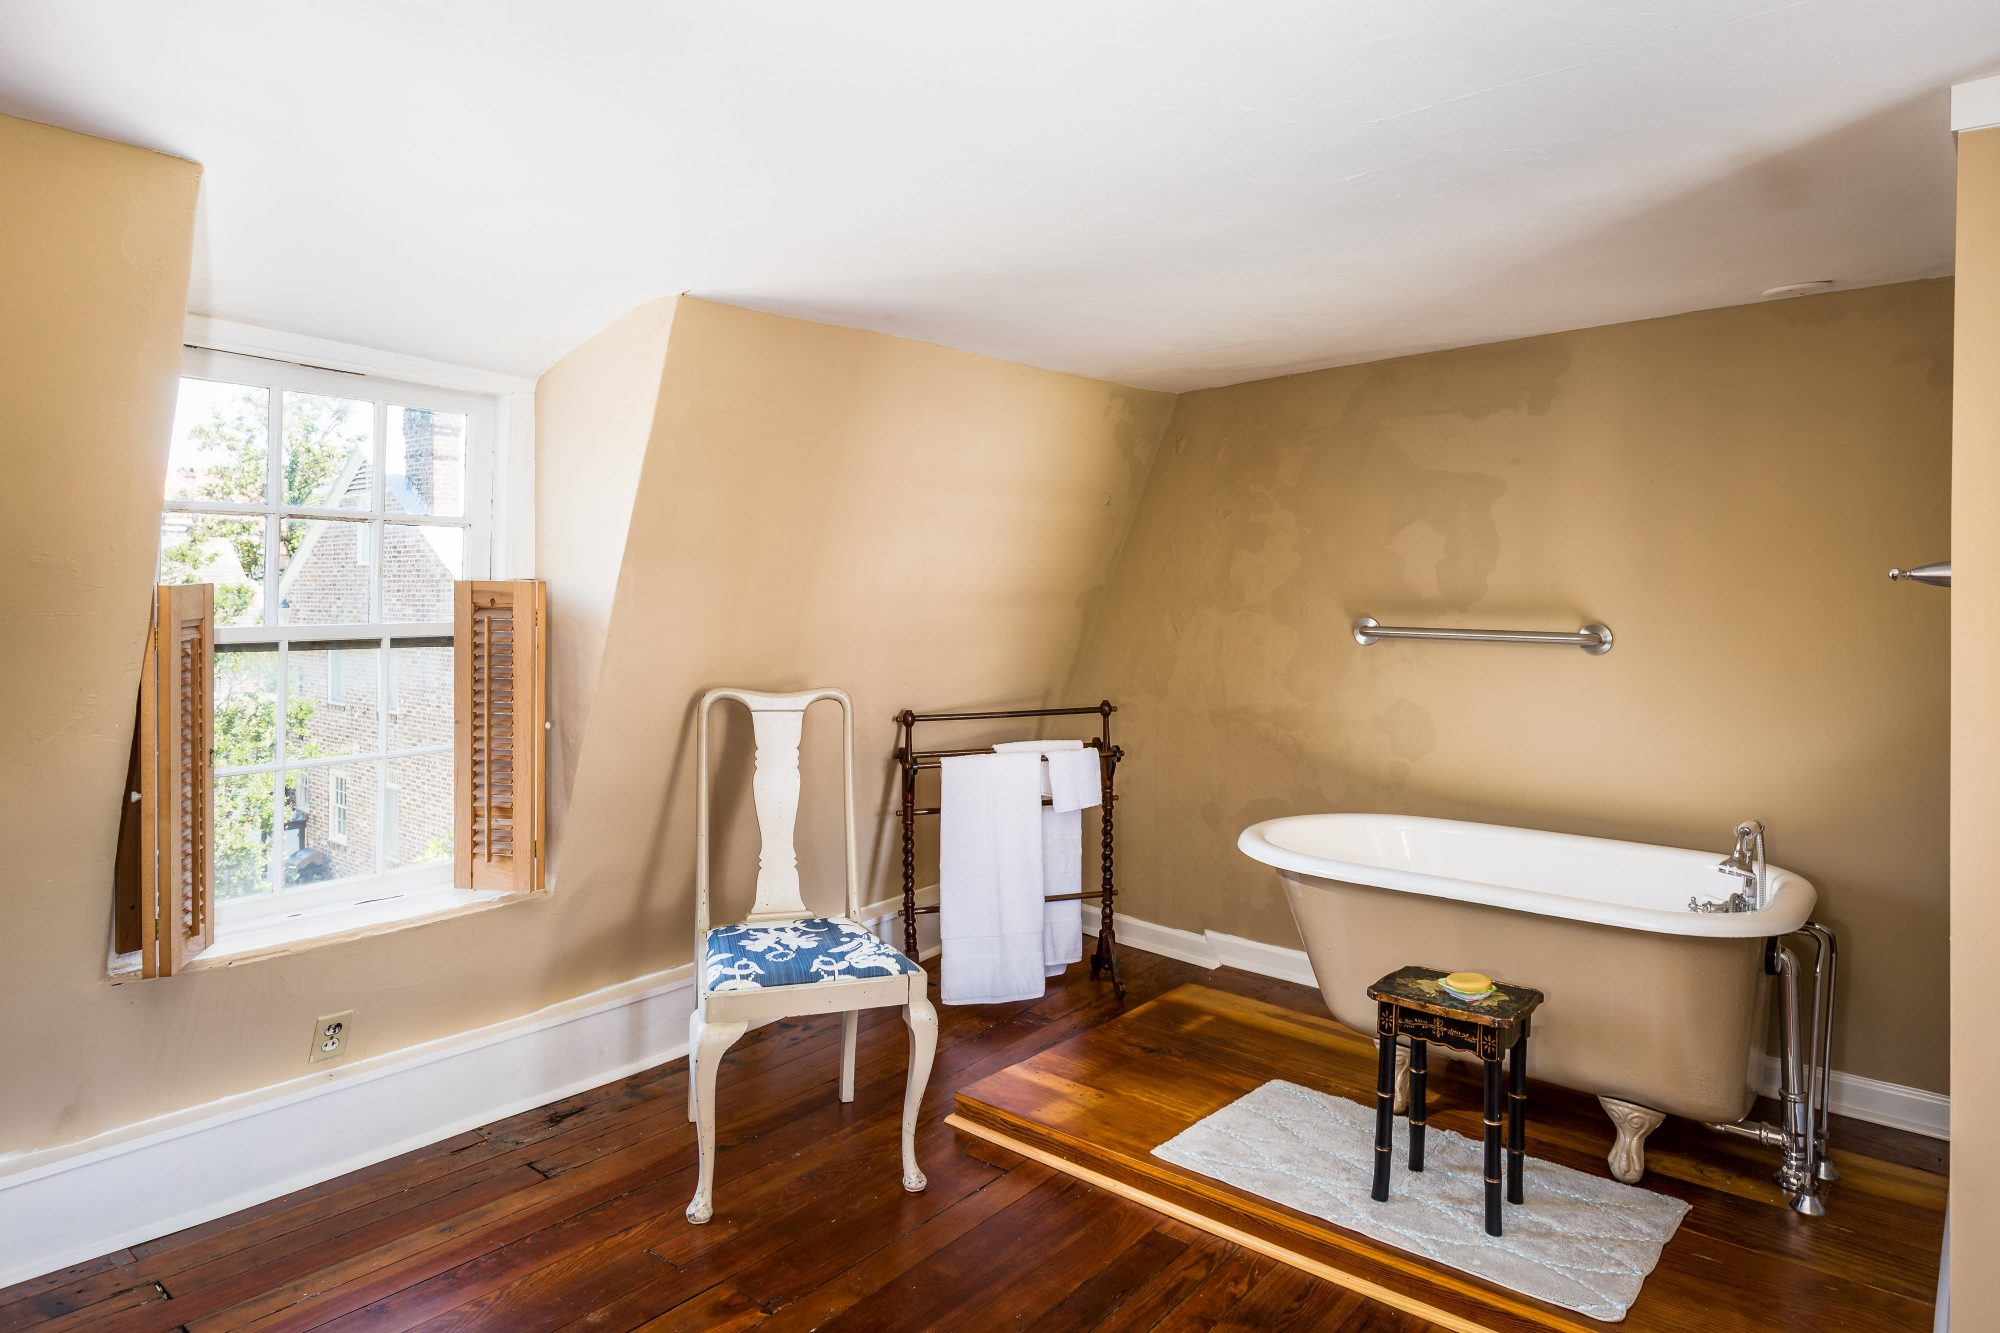 Charleston Pink House A Full Bath With a Claw Foot Tub and Plenty of Extra Space